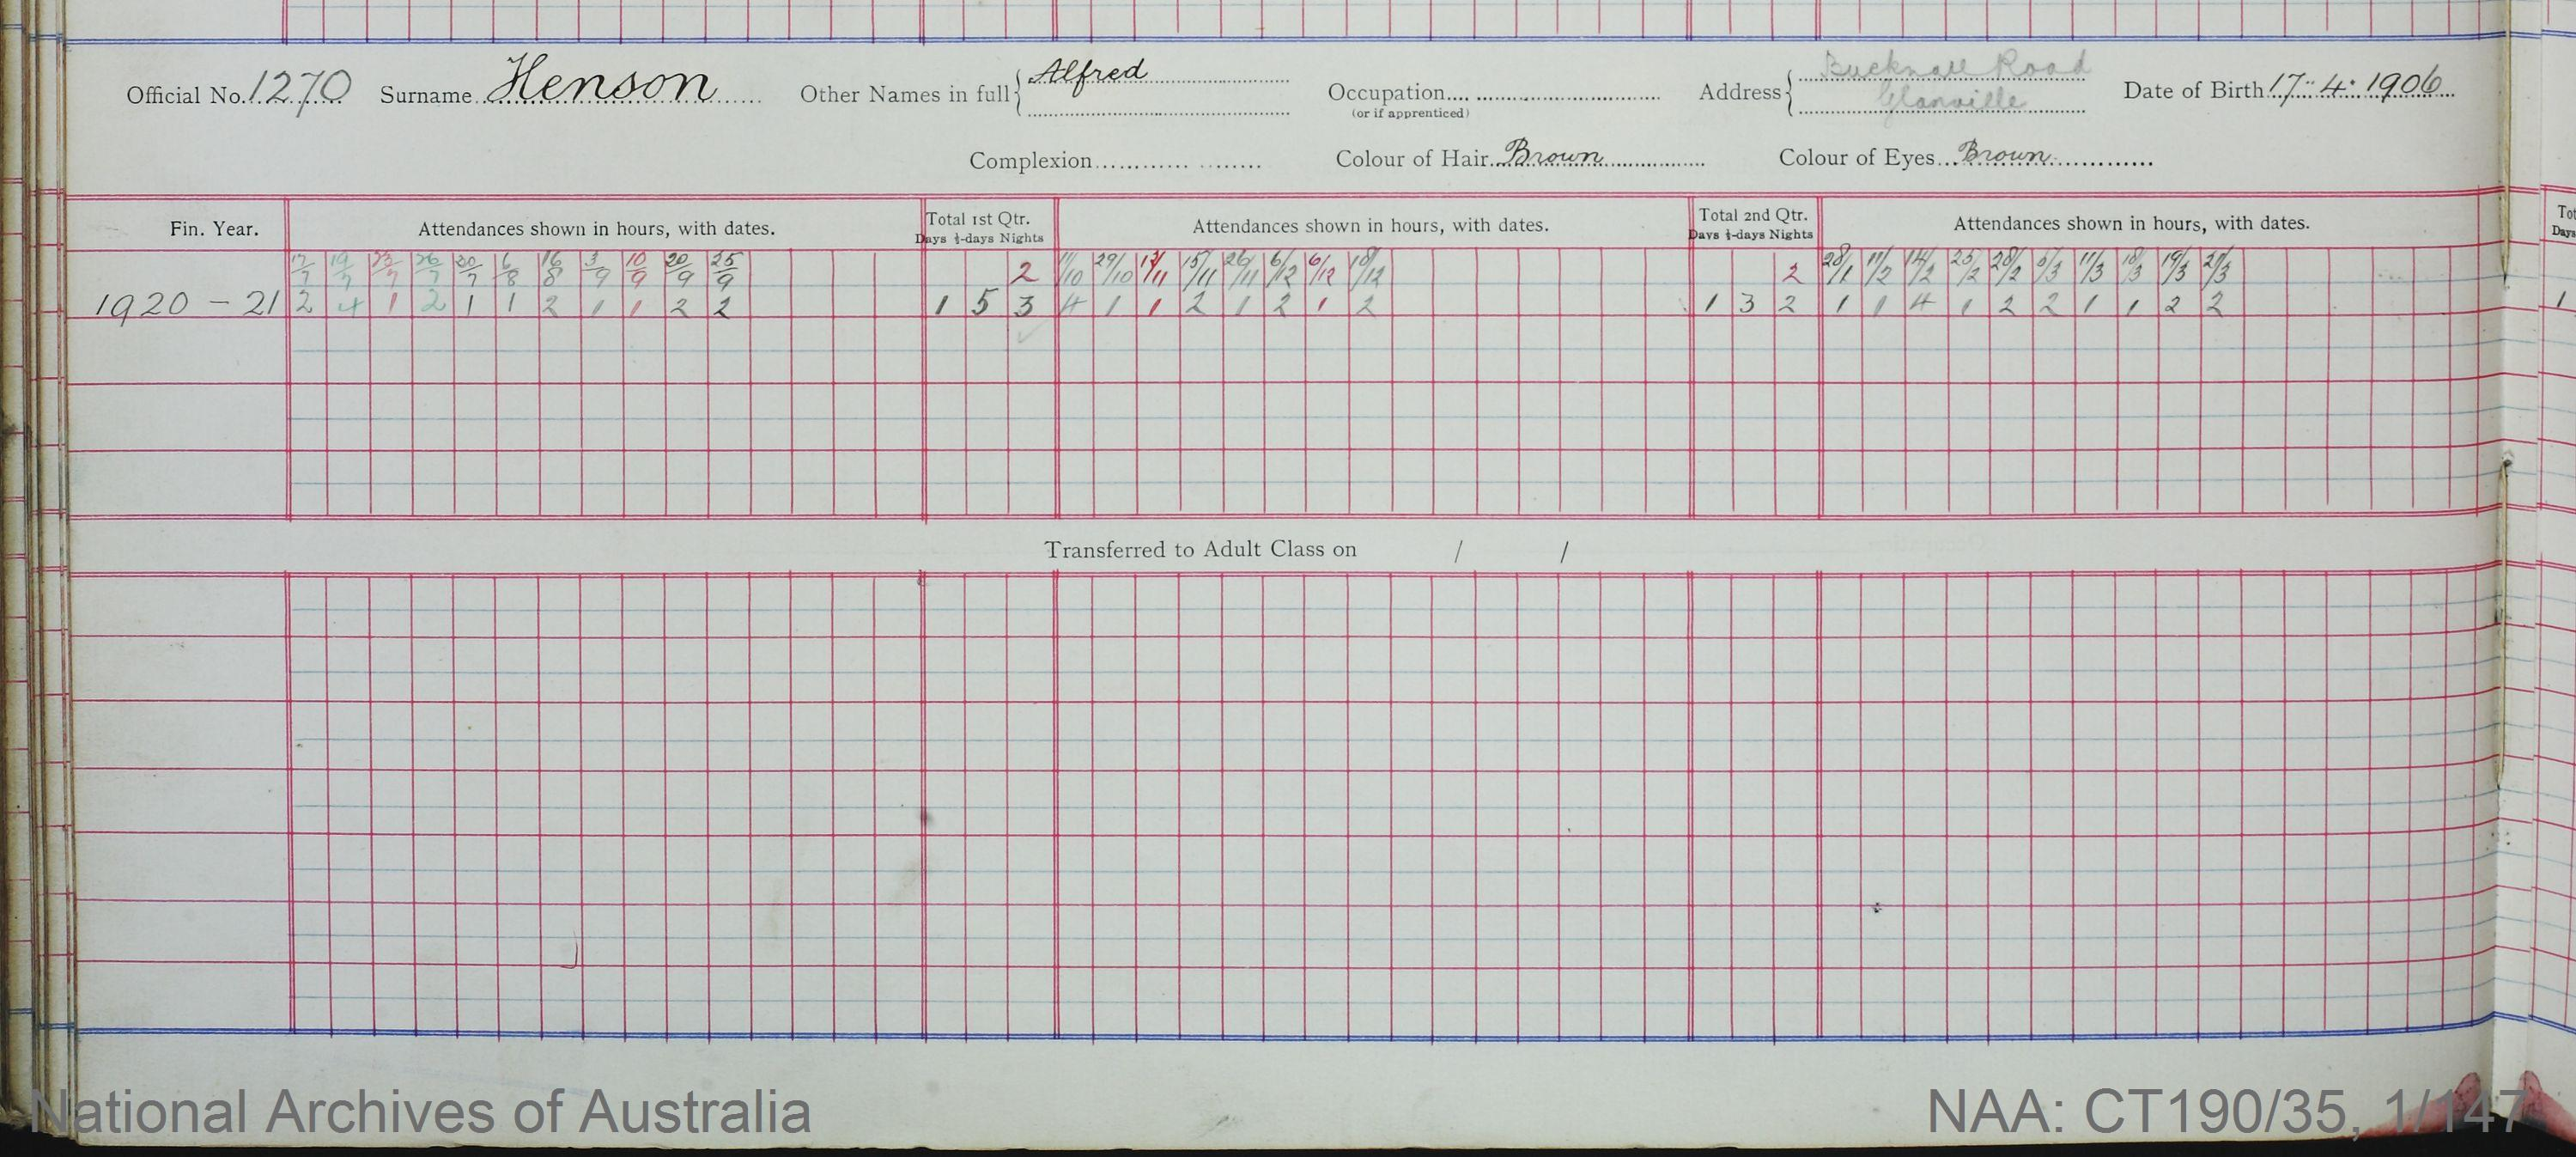 SURNAME - HENSON;  GIVEN NAME(S) - Alfred;  OFFICIAL NUMBER - 1270;  DATE OF BIRTH - 17 April 1906;  PLACE OF BIRTH - [Unknown];  NEXT OF KIN - [Unknown];  SERVICE/STATION - Semaphore, South Australia;  REGISTRATION DATE - 16 January 1920